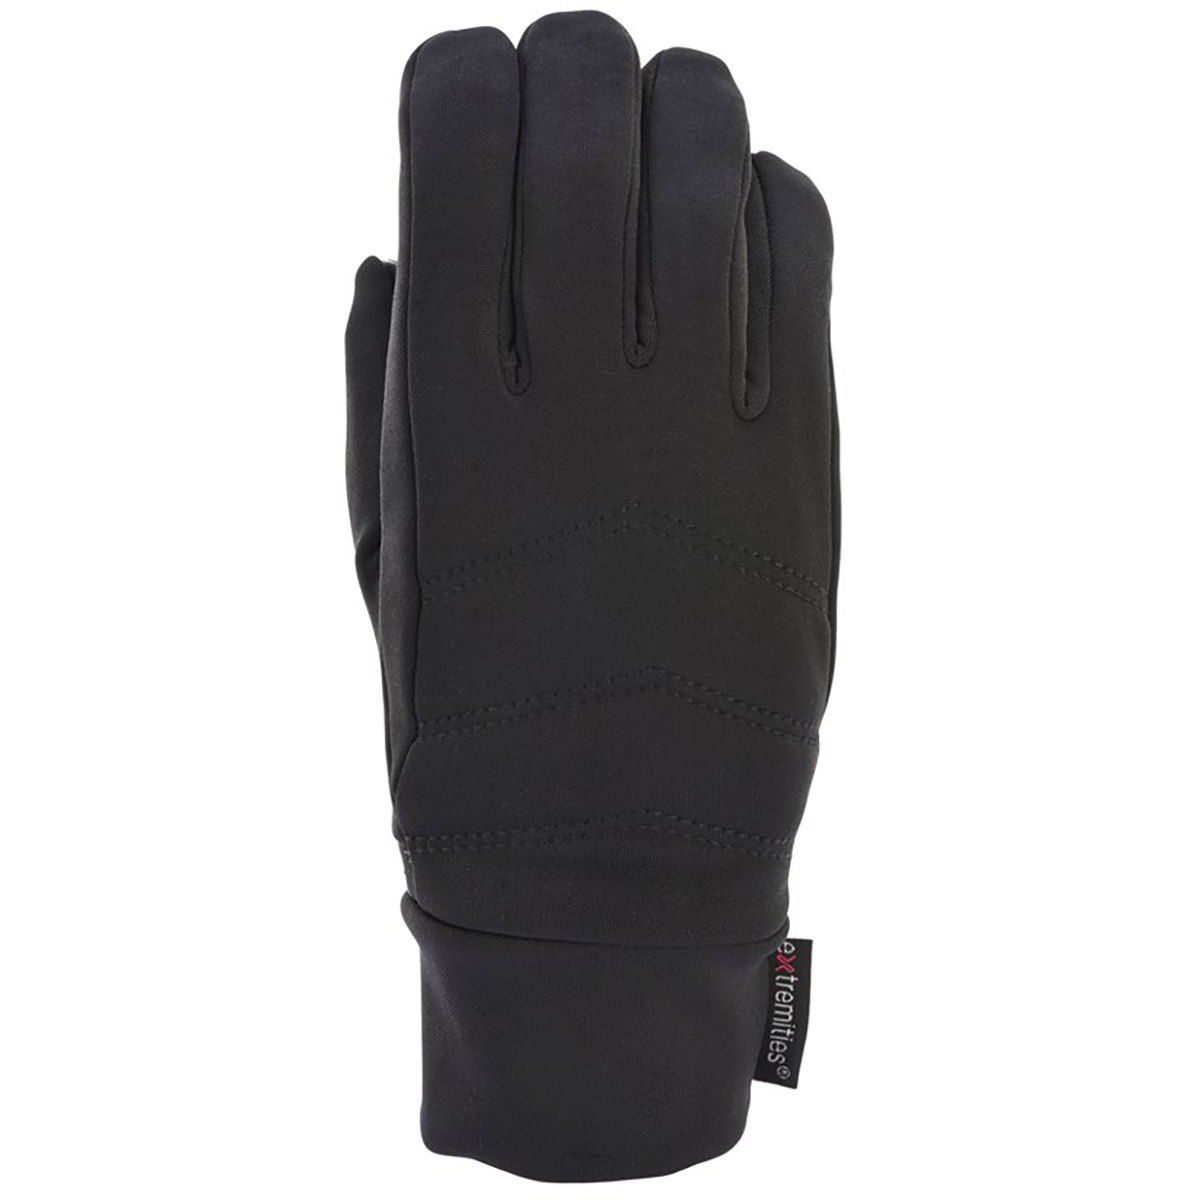 Extremities Super Thicky Glove - Guantes